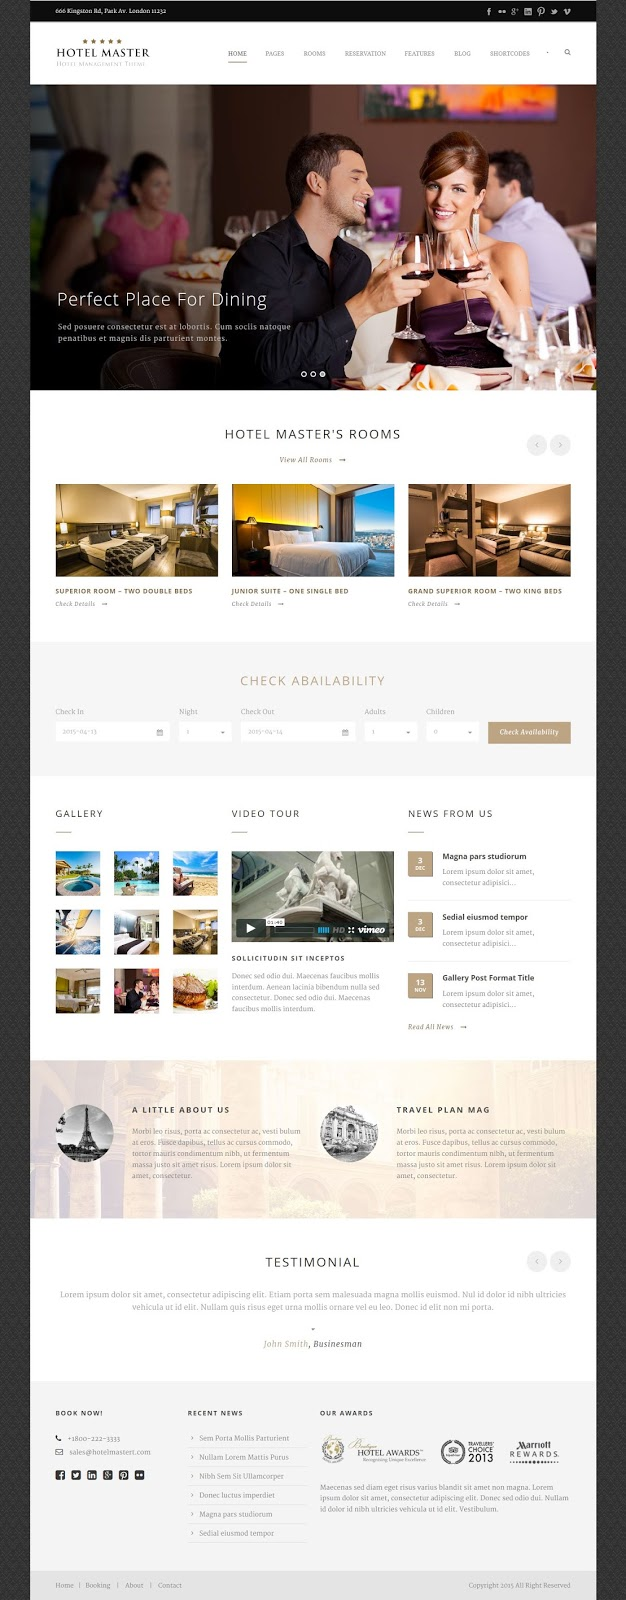 Best Hotel Reservation WordPress Theme